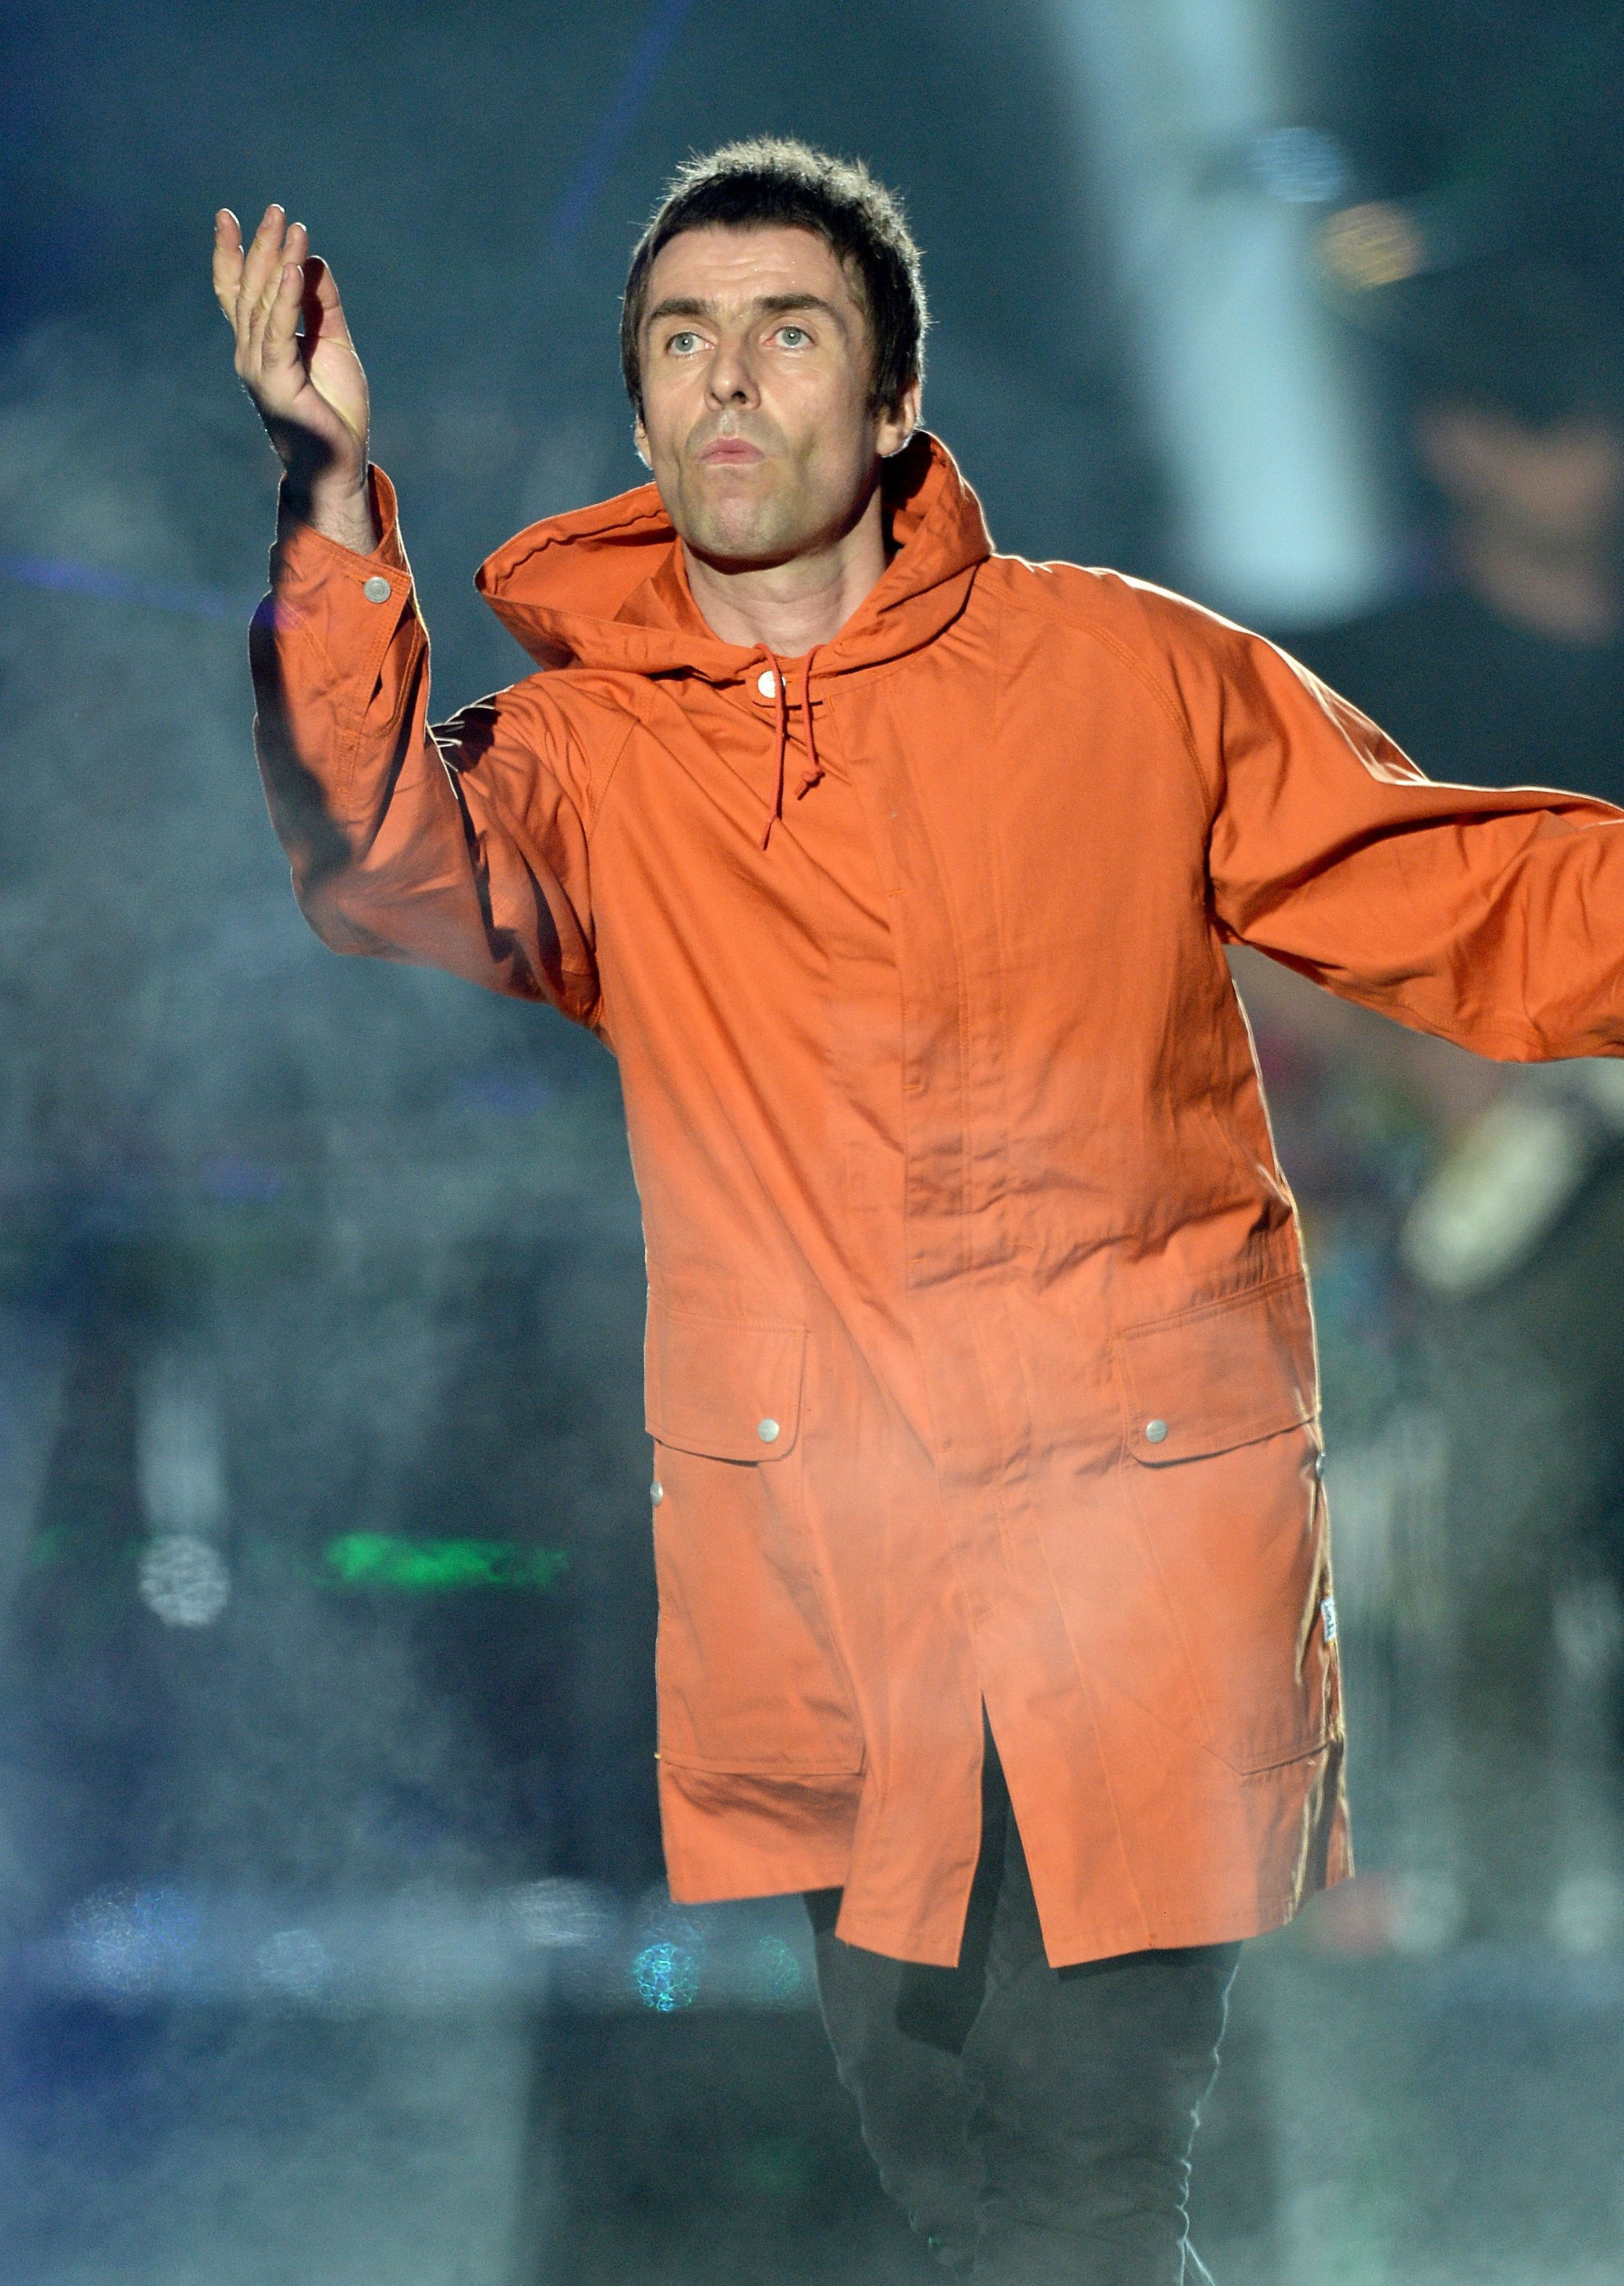 Liam Gallagher Is In No Rush To Film A 'Carpool Karaoke' With 'K***head' James